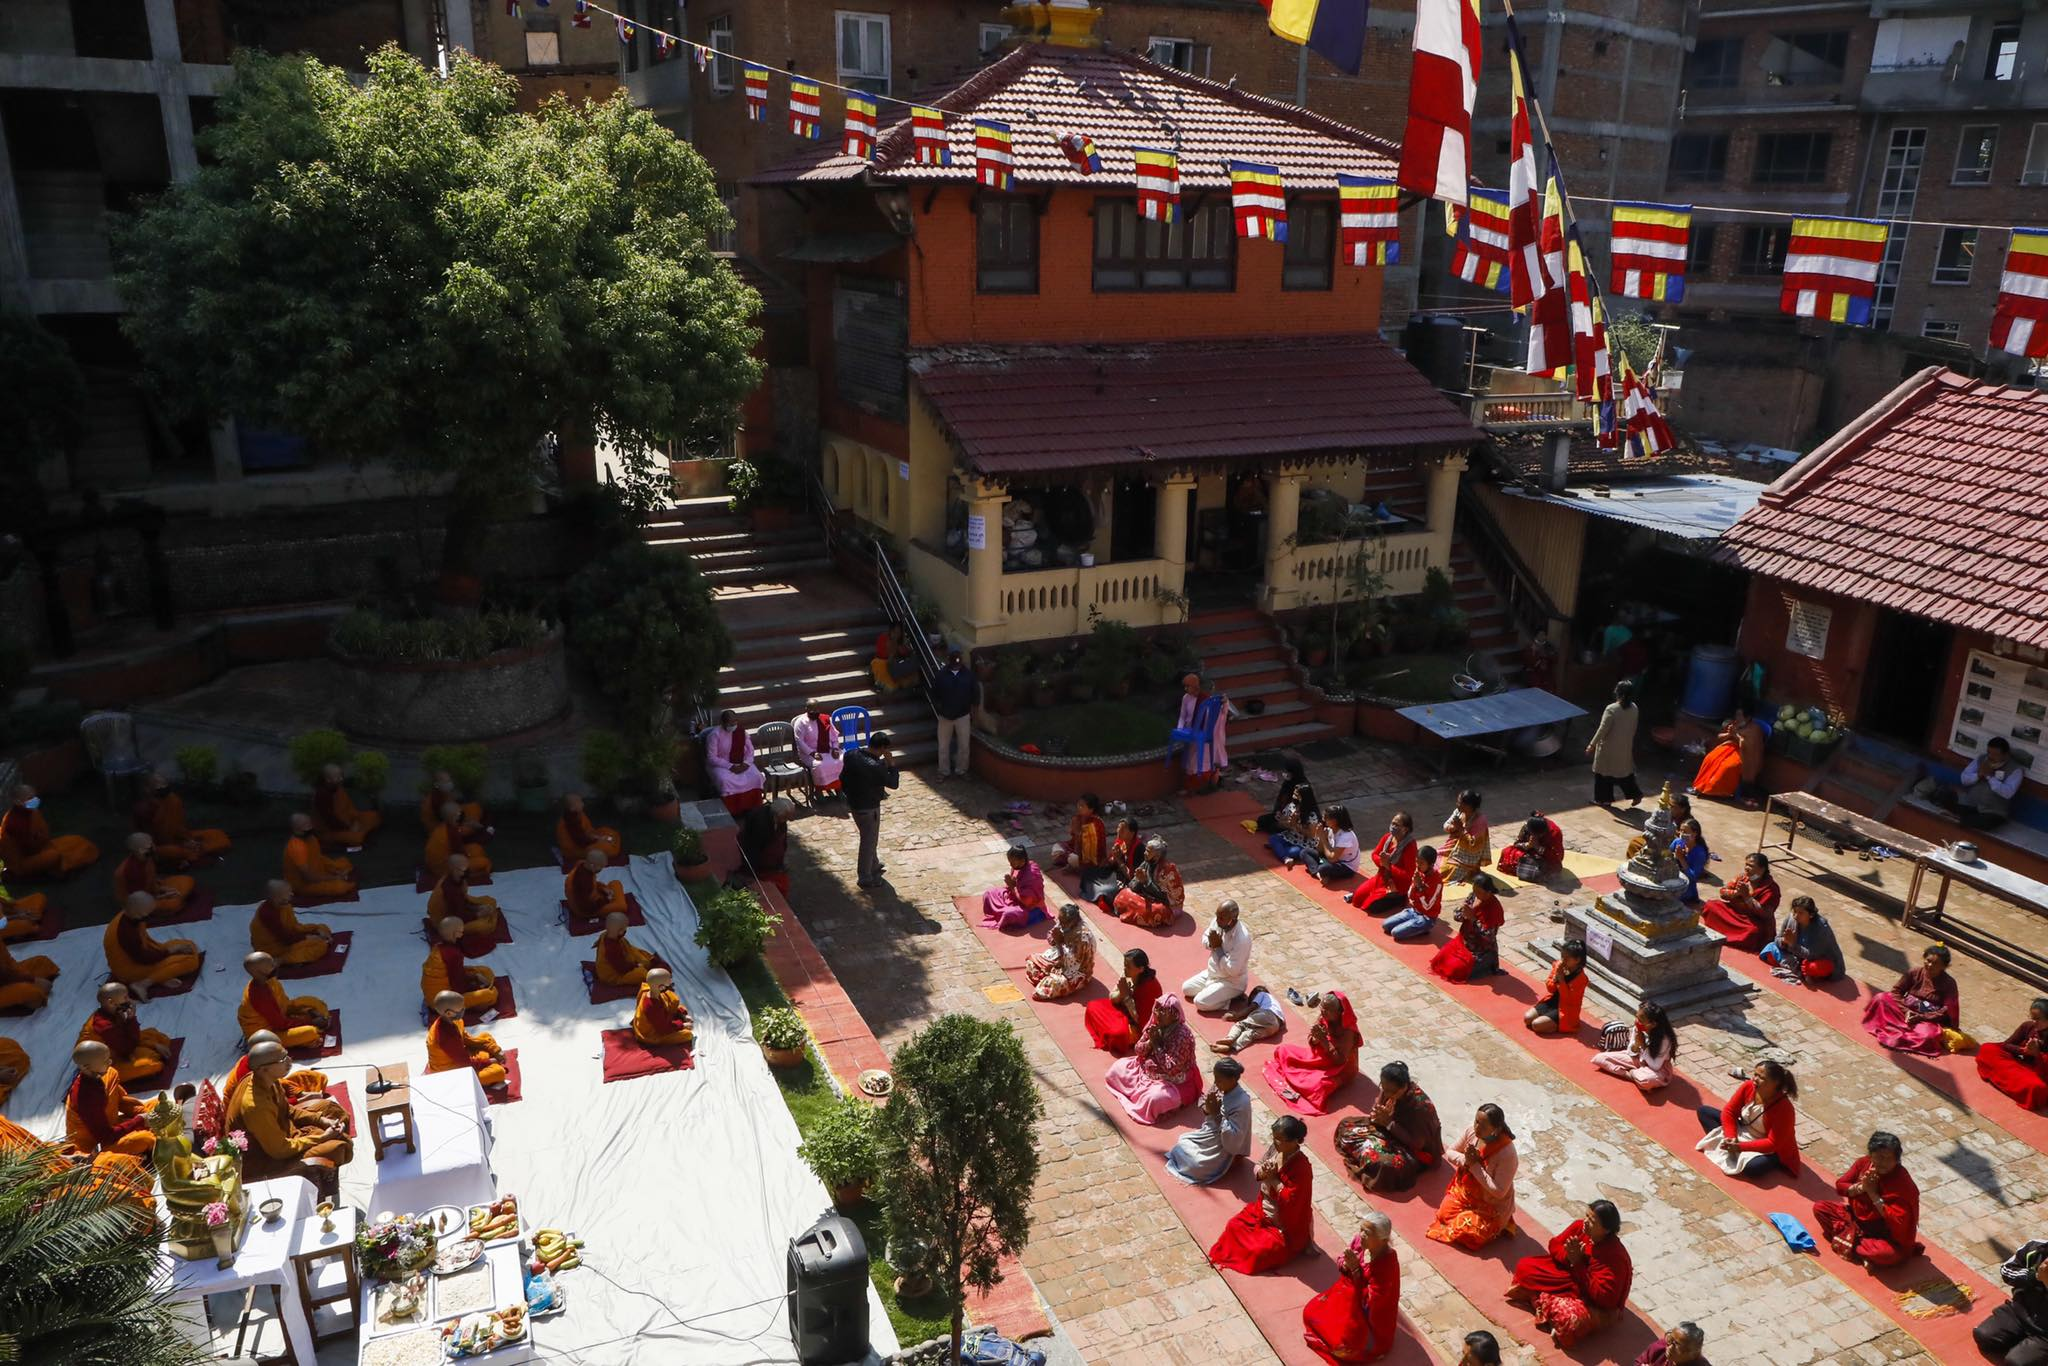 Despite the nation-wide COVID-19 lockdown, worshippers for prayers maintaining physical distance to celebrate the auspicious occasion of the Buddha's 2,564th birthday in Kathmandu on Thursday.